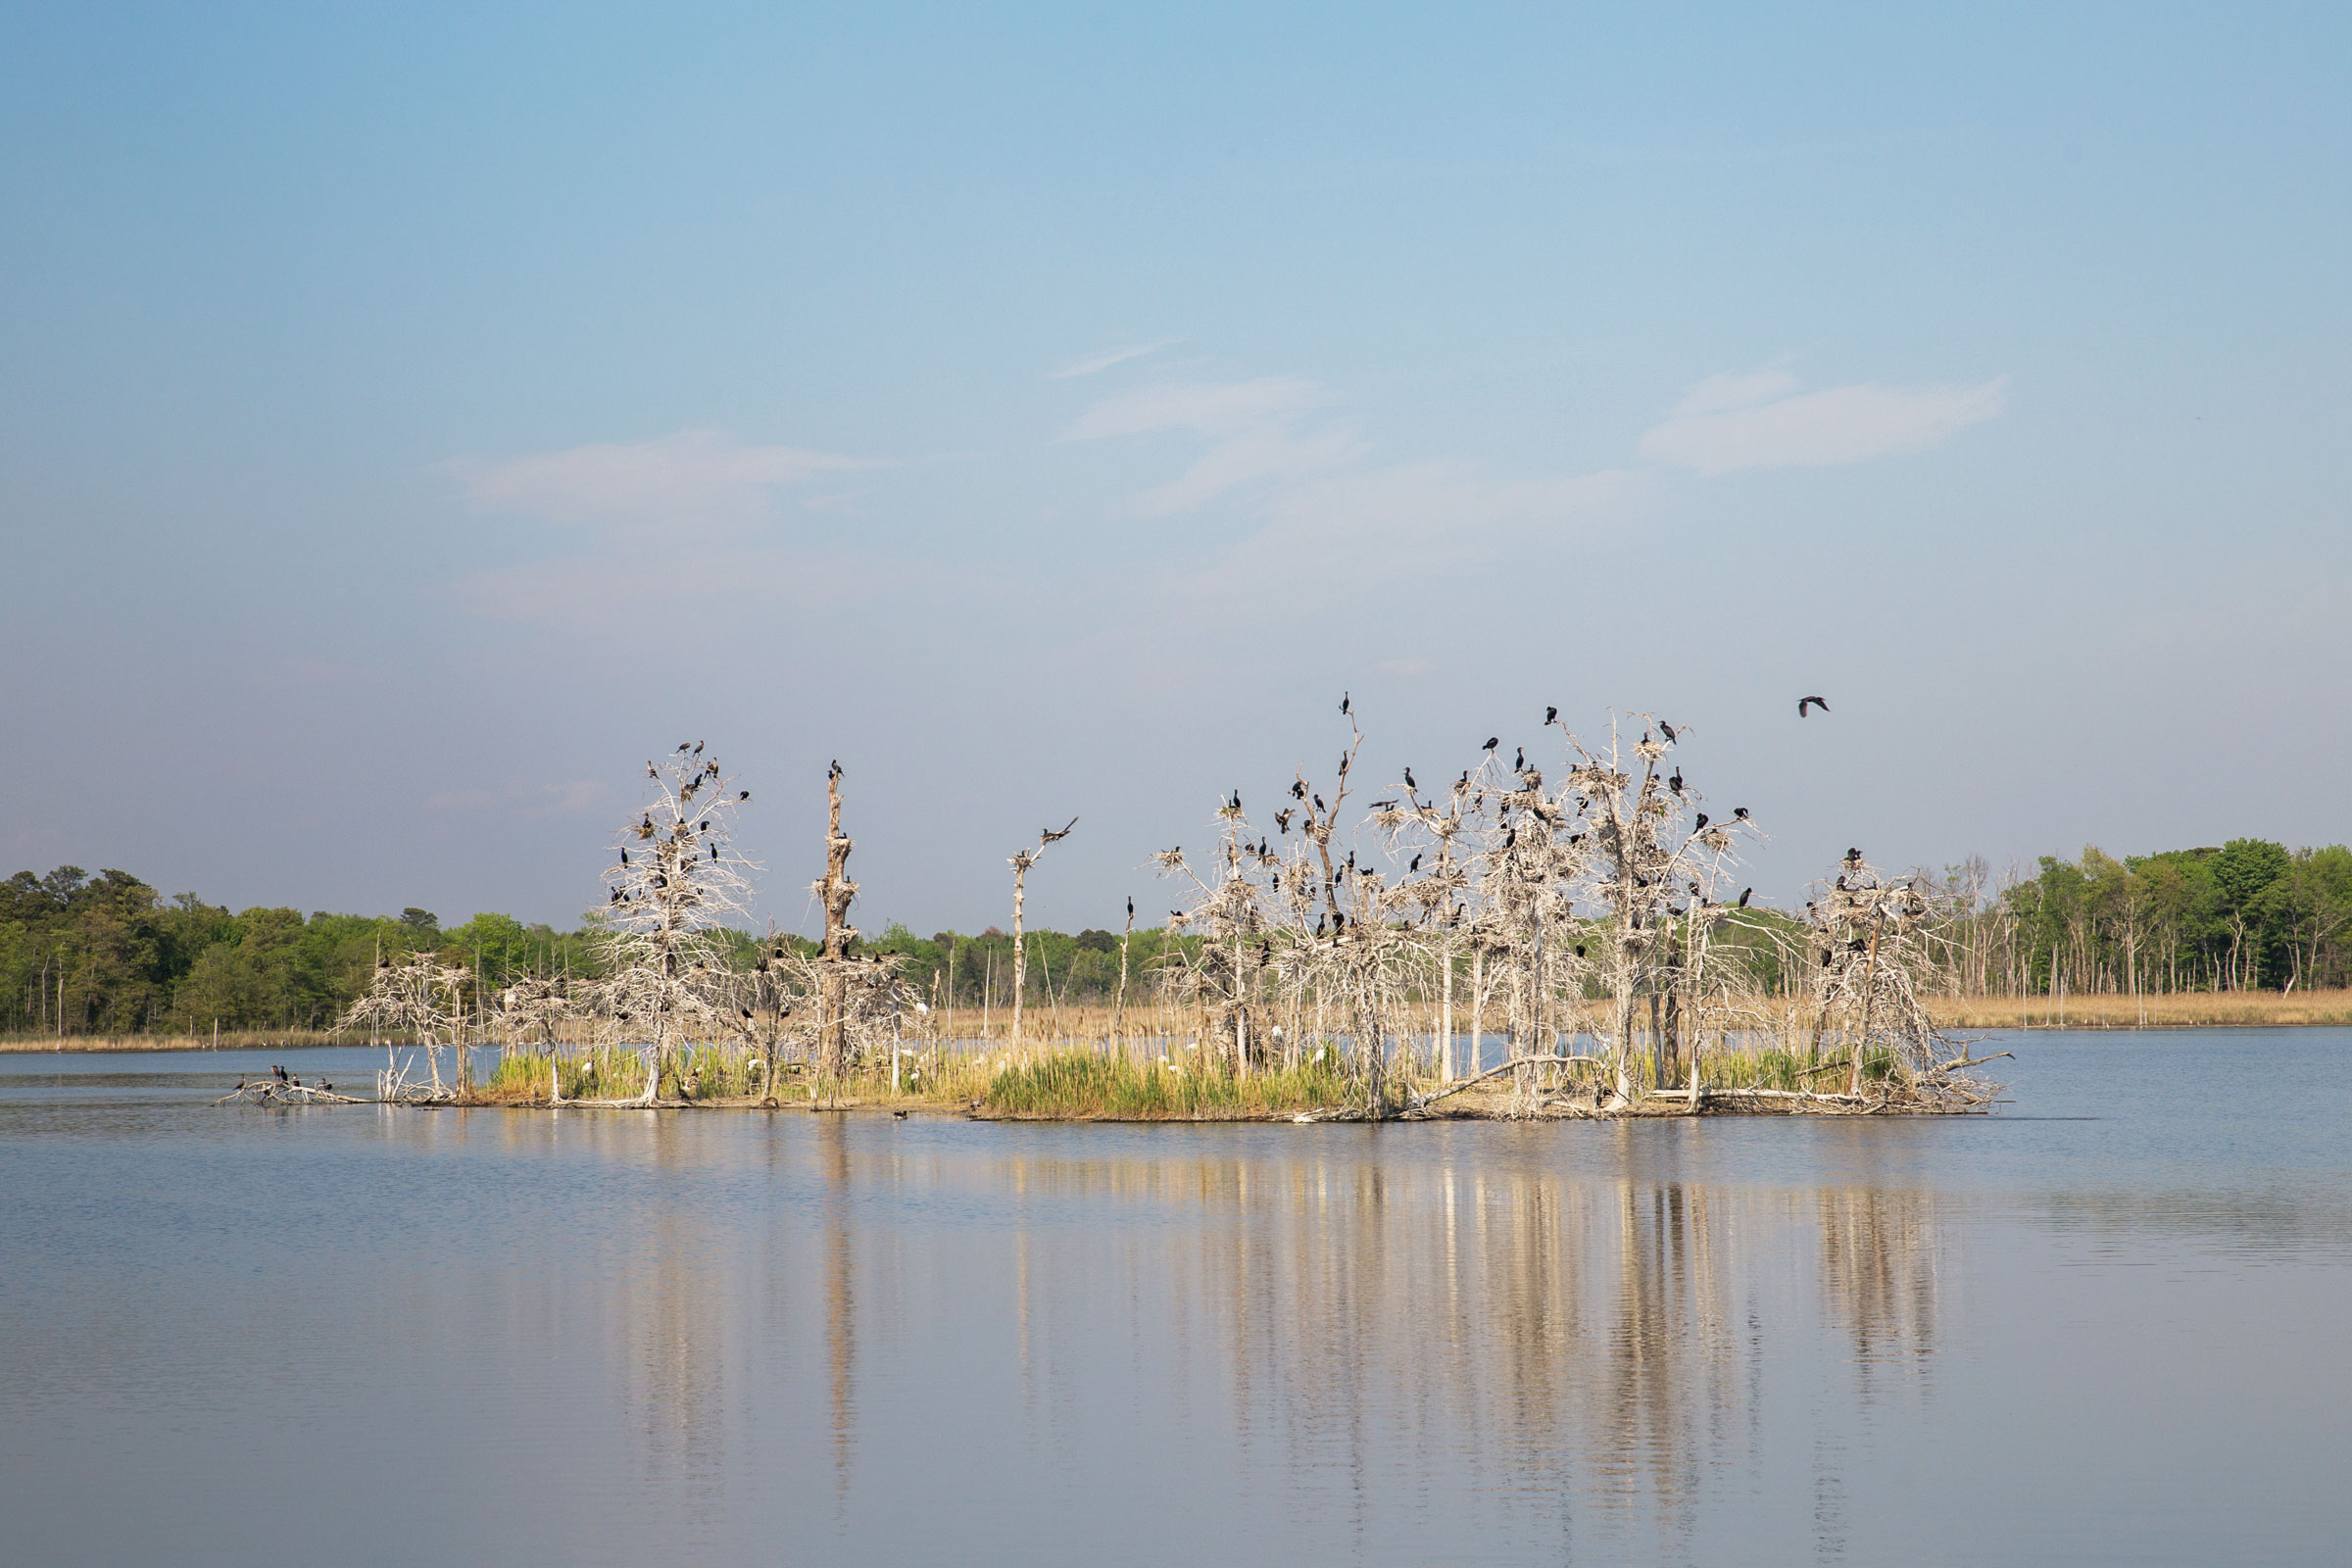 Double-crested Cormorants and other birds at the Heislerville Wildlife Management Area. Camilla Cerea/Audubon